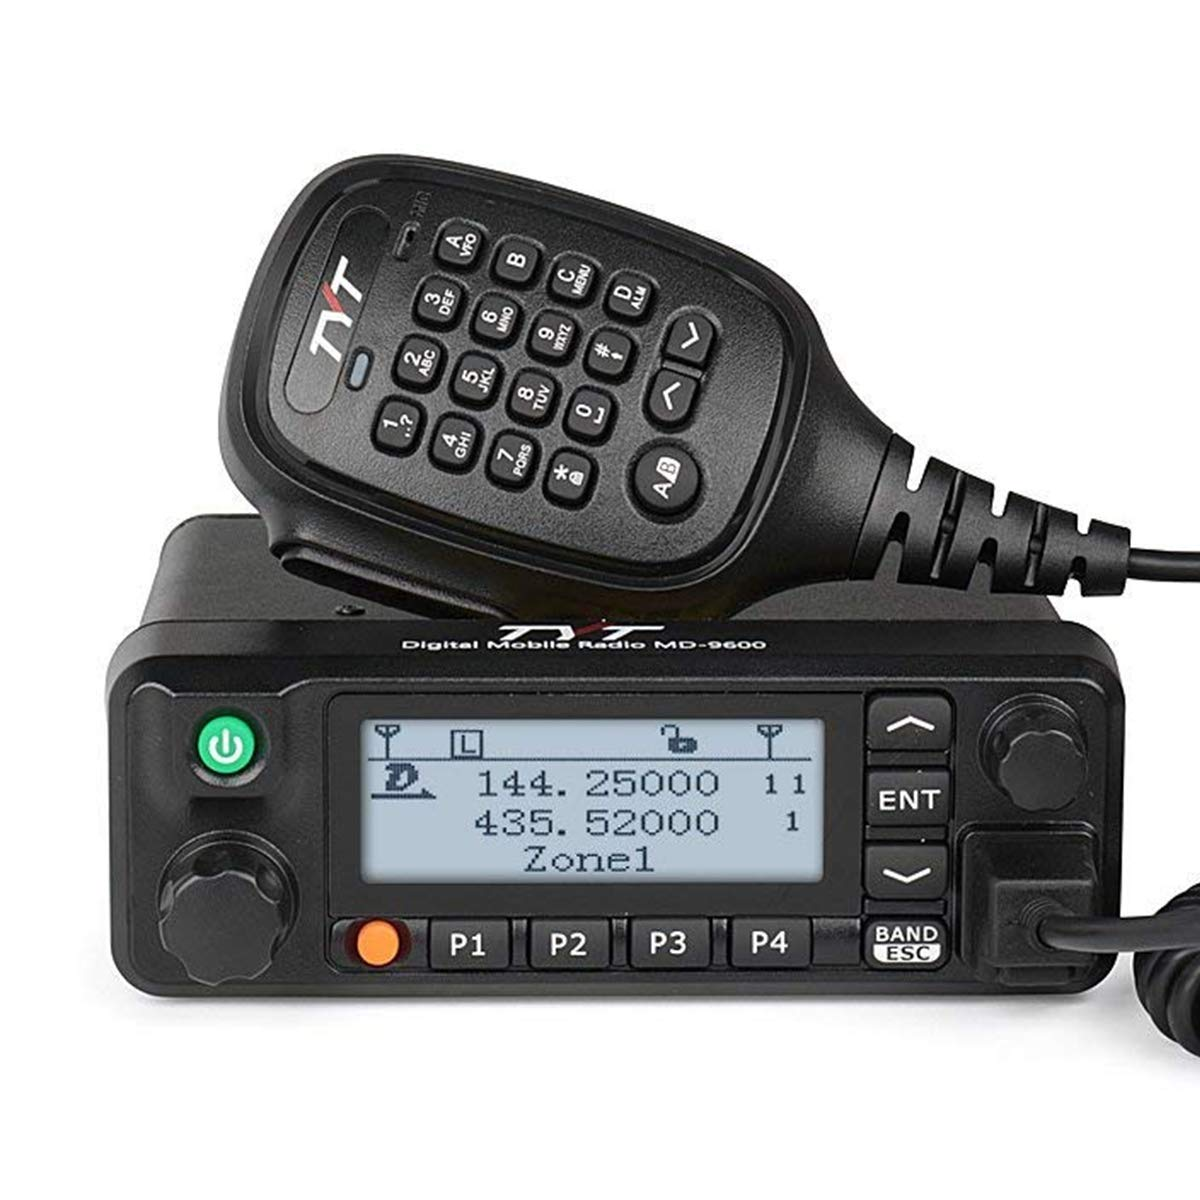 TYT MD-9600 Dual Band Digital DMR Mobile Car Truck Transceiver, VHF/UHF 3000 Channels,10000 Contacts, 250 Zones, 50W VHF/45W UHF/25W Amateur Ham Radio with Programming Cable by TYT